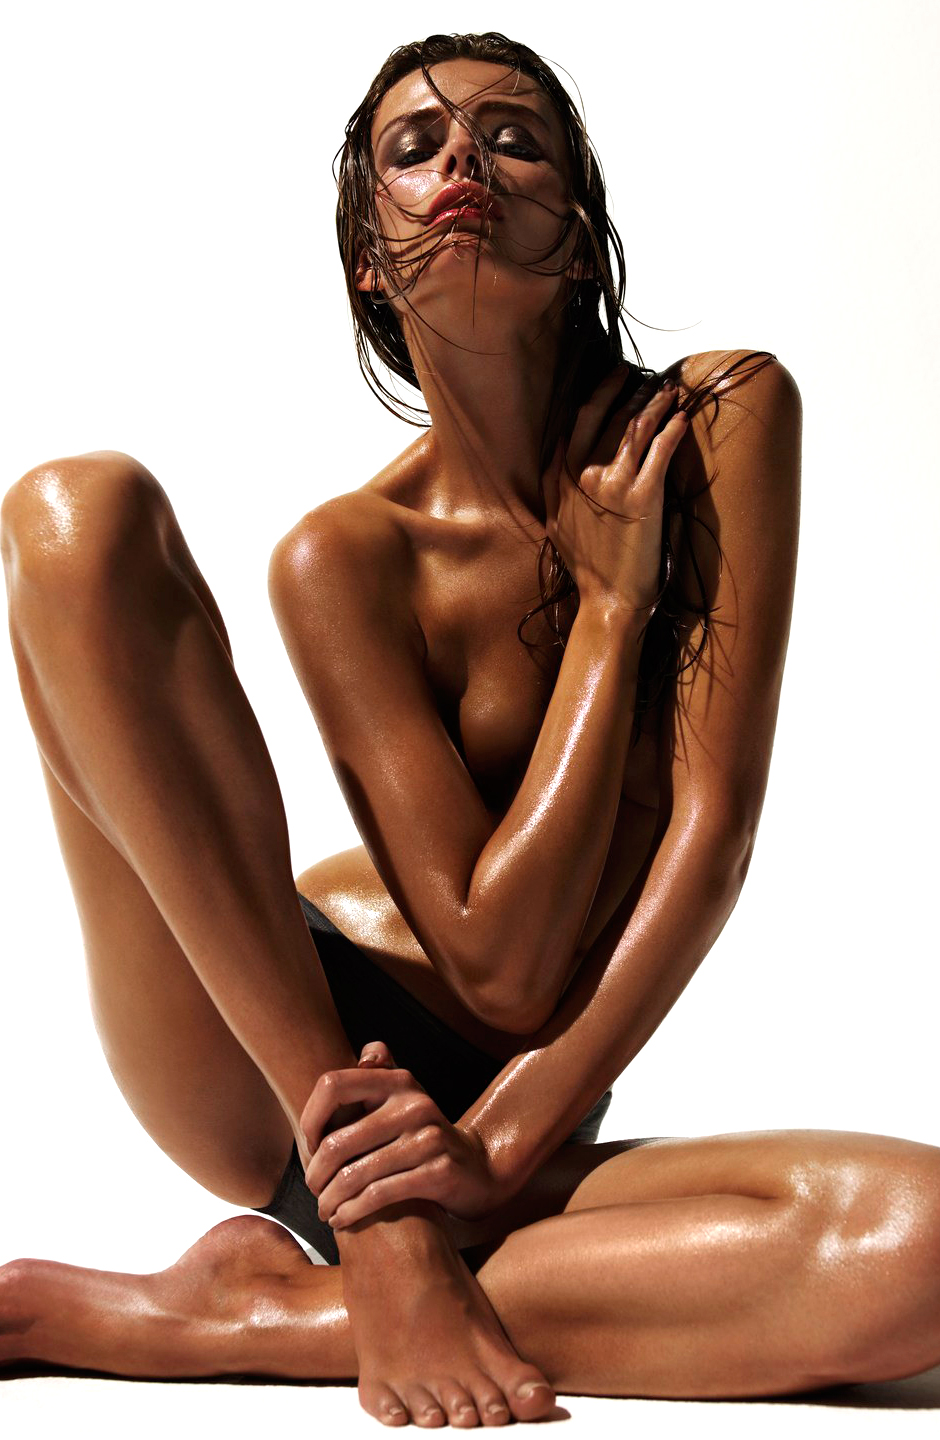 Best natural & organic self tanners / organic beauty / Photo: Photo source: Edita Vilkeviciute in Numero November 2009 (photography: Solve Sundsbo, styling: Franck Benhamou) via fashioned by love british fashion blog